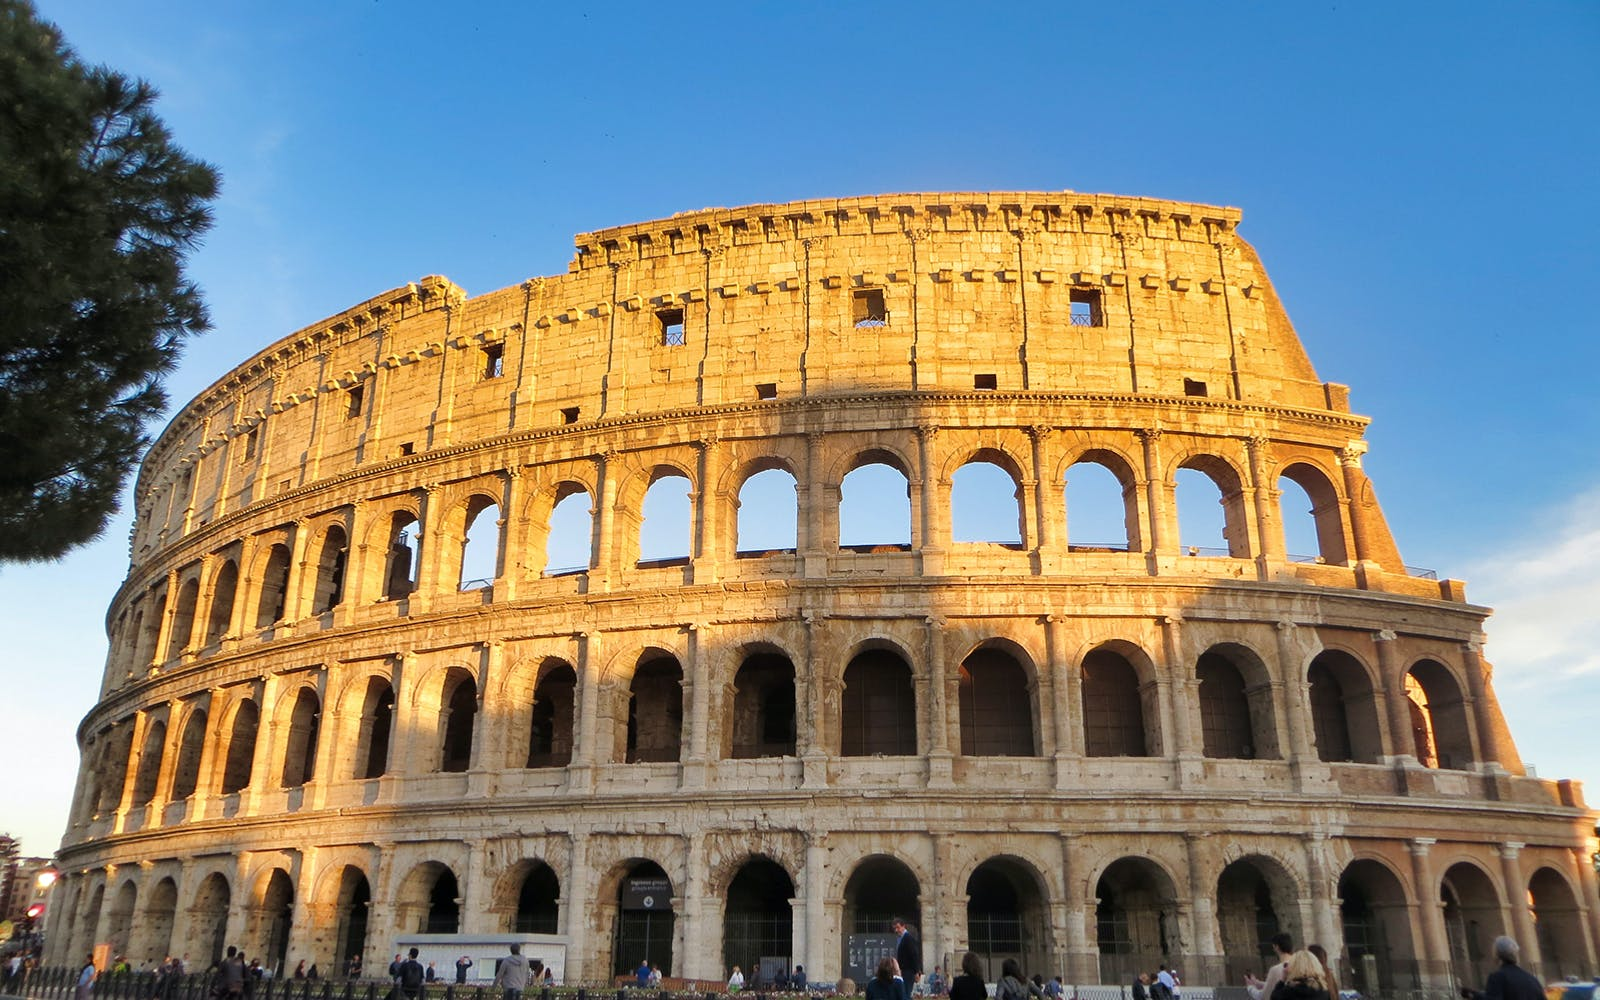 Timed Entry Package: Ticket to Colosseum, Roman Forum and Palatine Hill